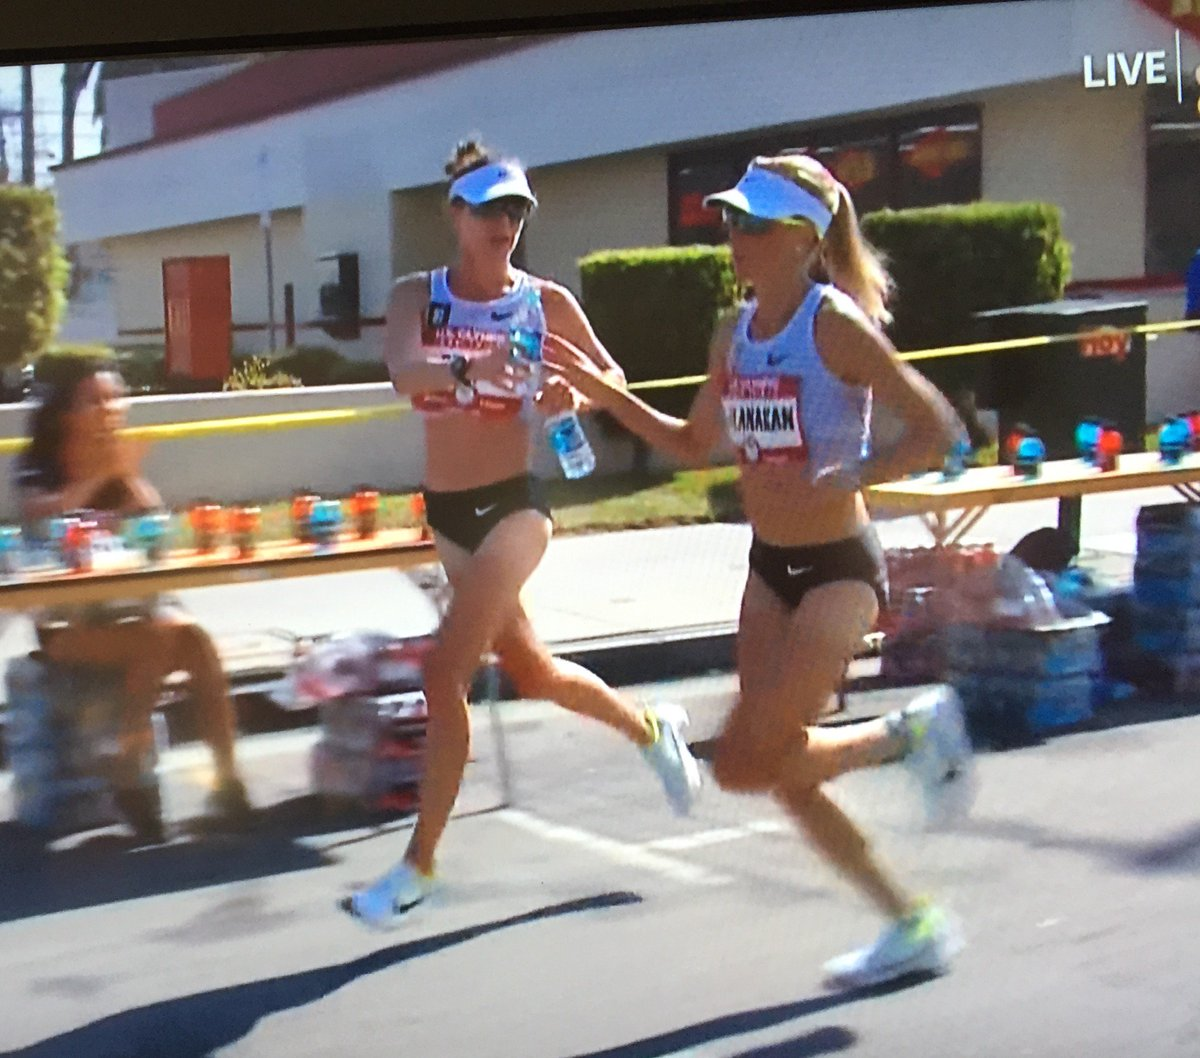 The mentee @HastyHastings becomes the mentor. What a beautiful thing to watch. #LA2016 @ShalaneFlanagan #GirlPower https://t.co/boMsw13jNz